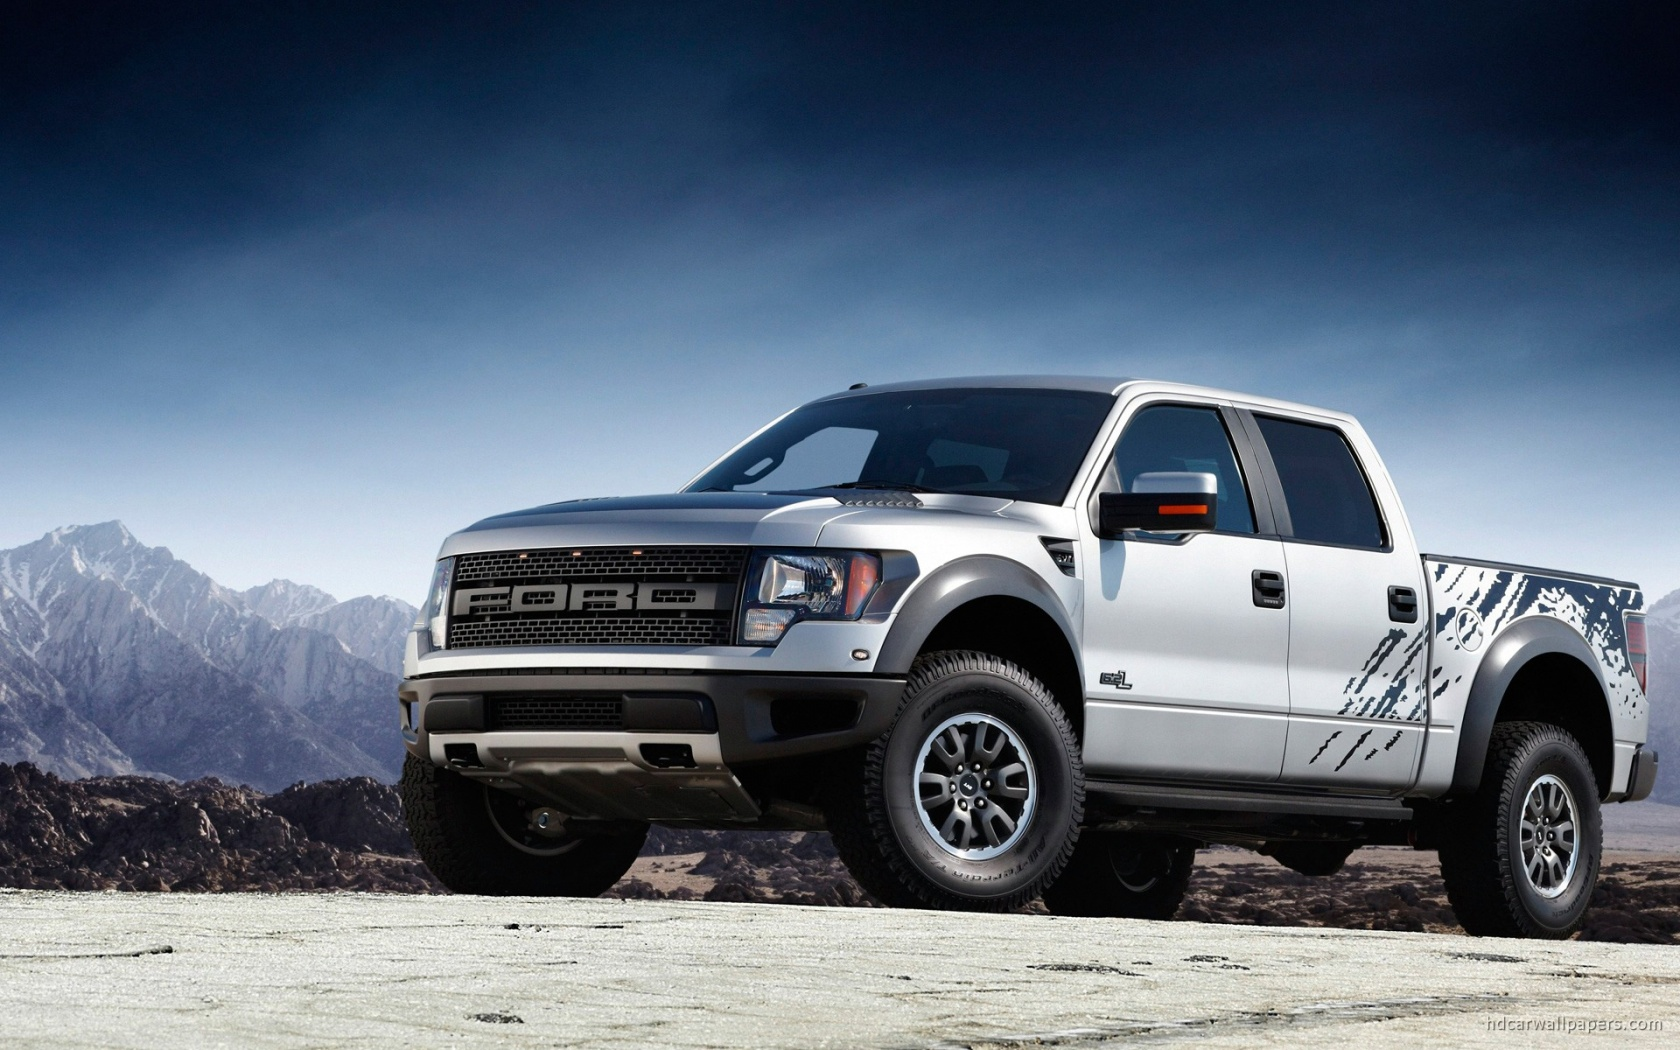 2011 ford f150 Raptor Wallpaper in 1680x1050 Resolution 1680x1050